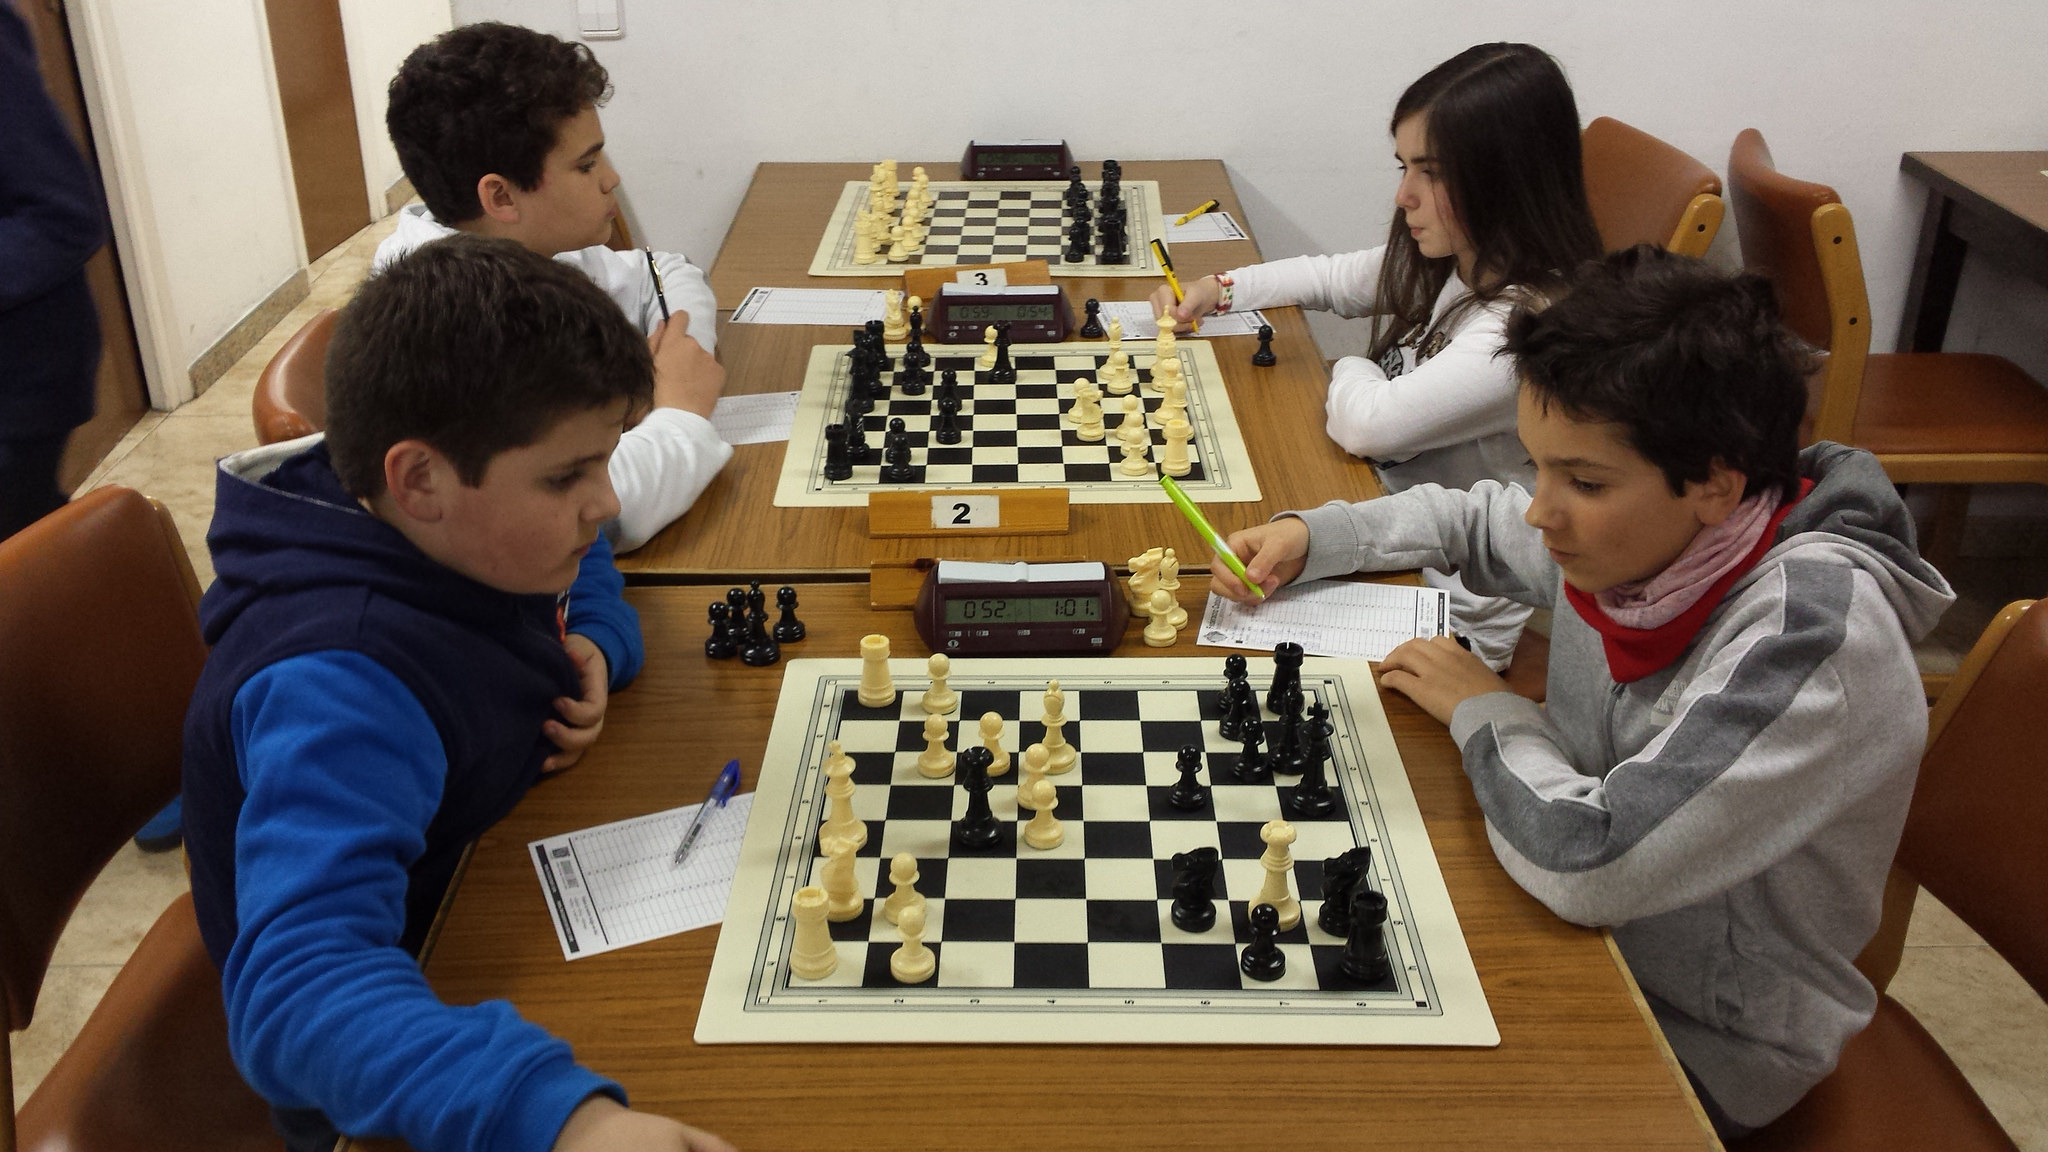 Comarques Pirinenques 2015 – Ronda 6